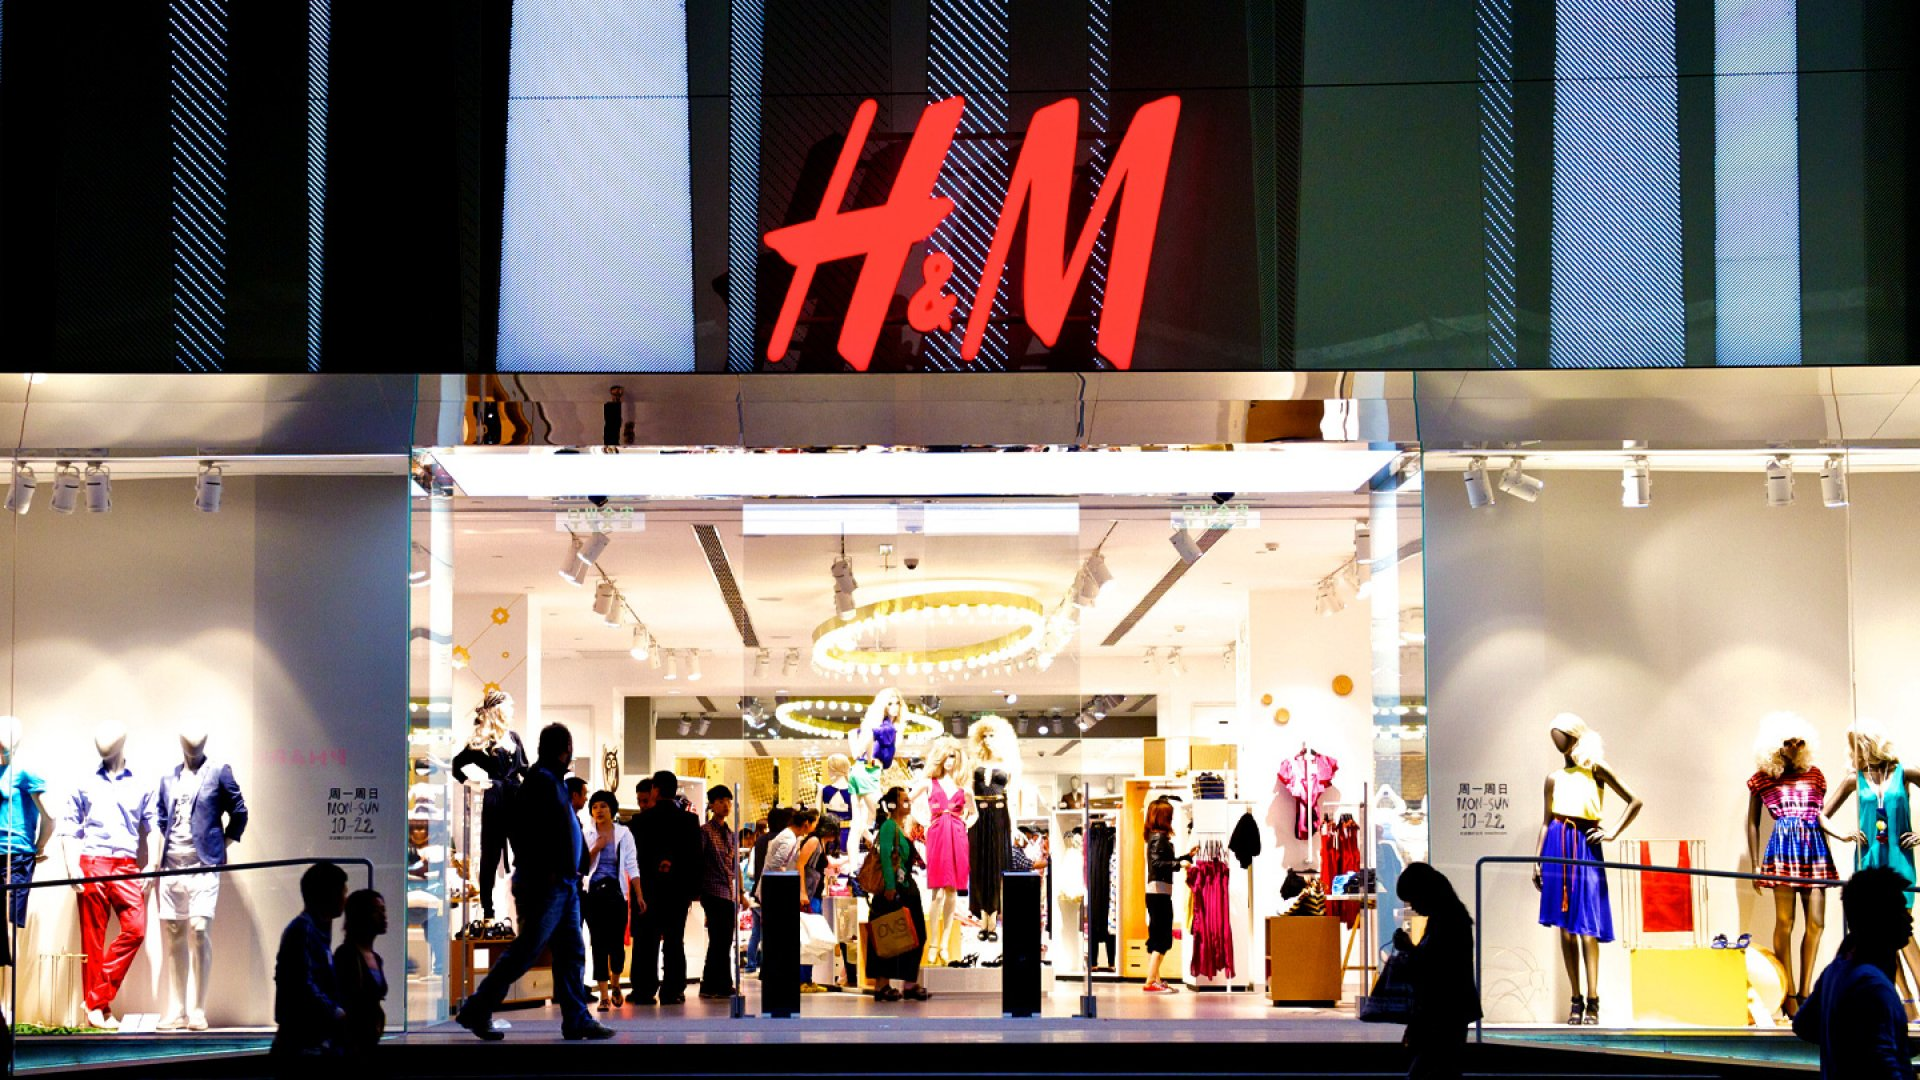 H&M Makes Their Suppliers List Public